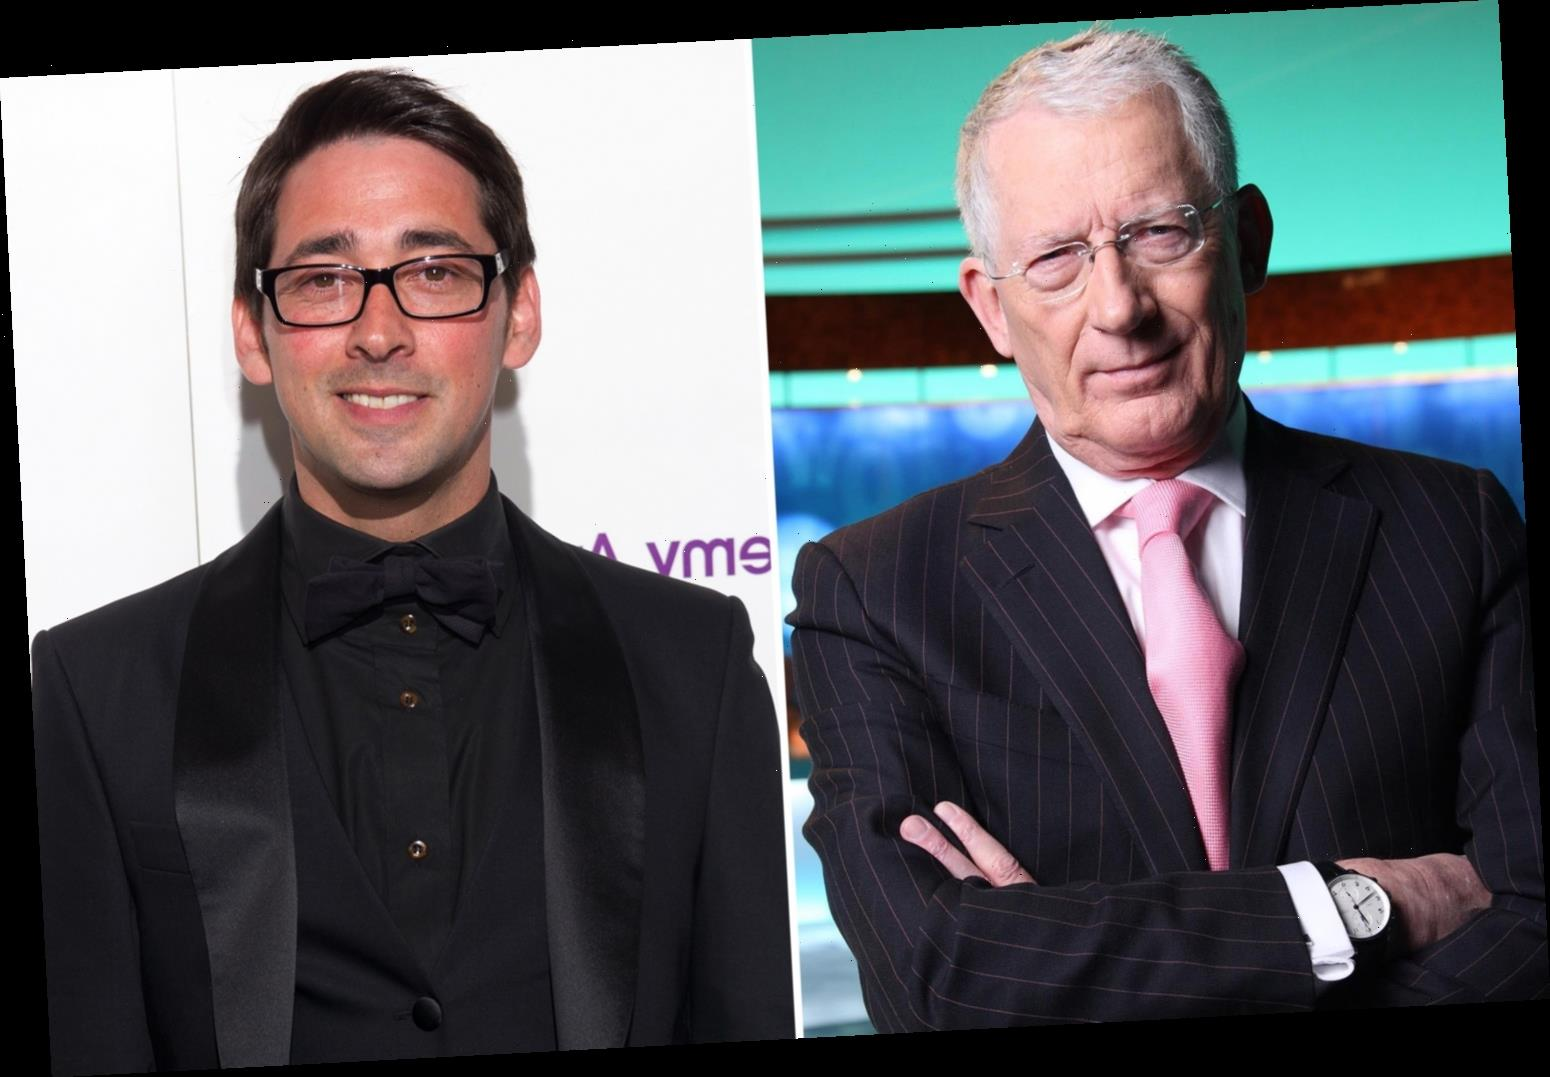 Countdown host Nick Hewer, 76, is replaced by Colin Murray as he shields from coronavirus